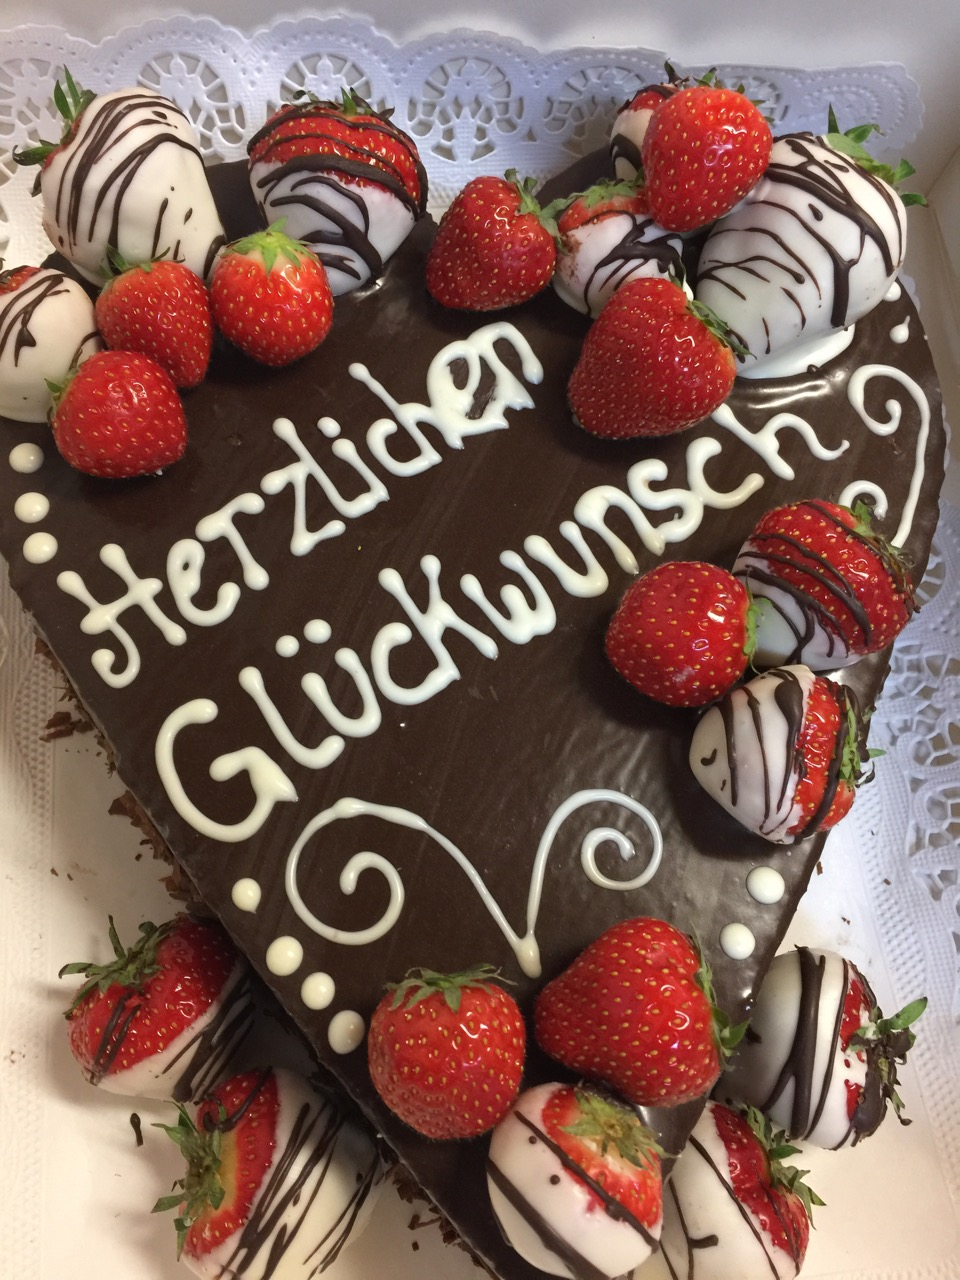 Torten Kuchen Backerei Heldbackerei Held